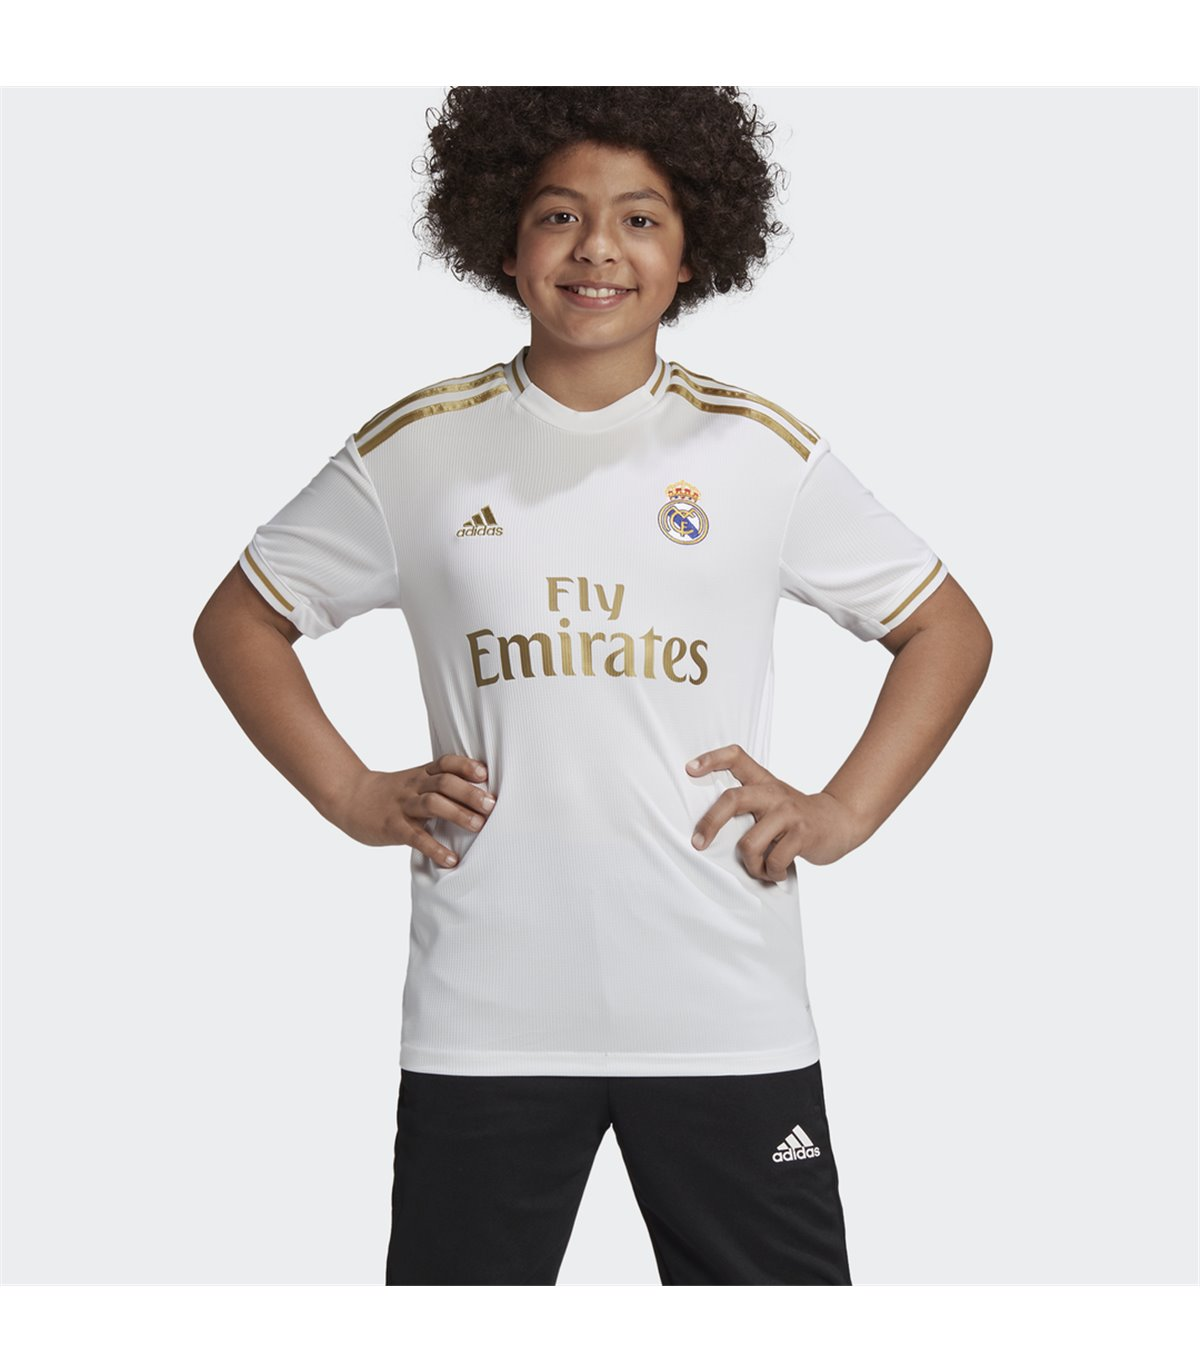 db7745989 CAMISETA ADIDAS REAL MADRID JUNIOR 19/20